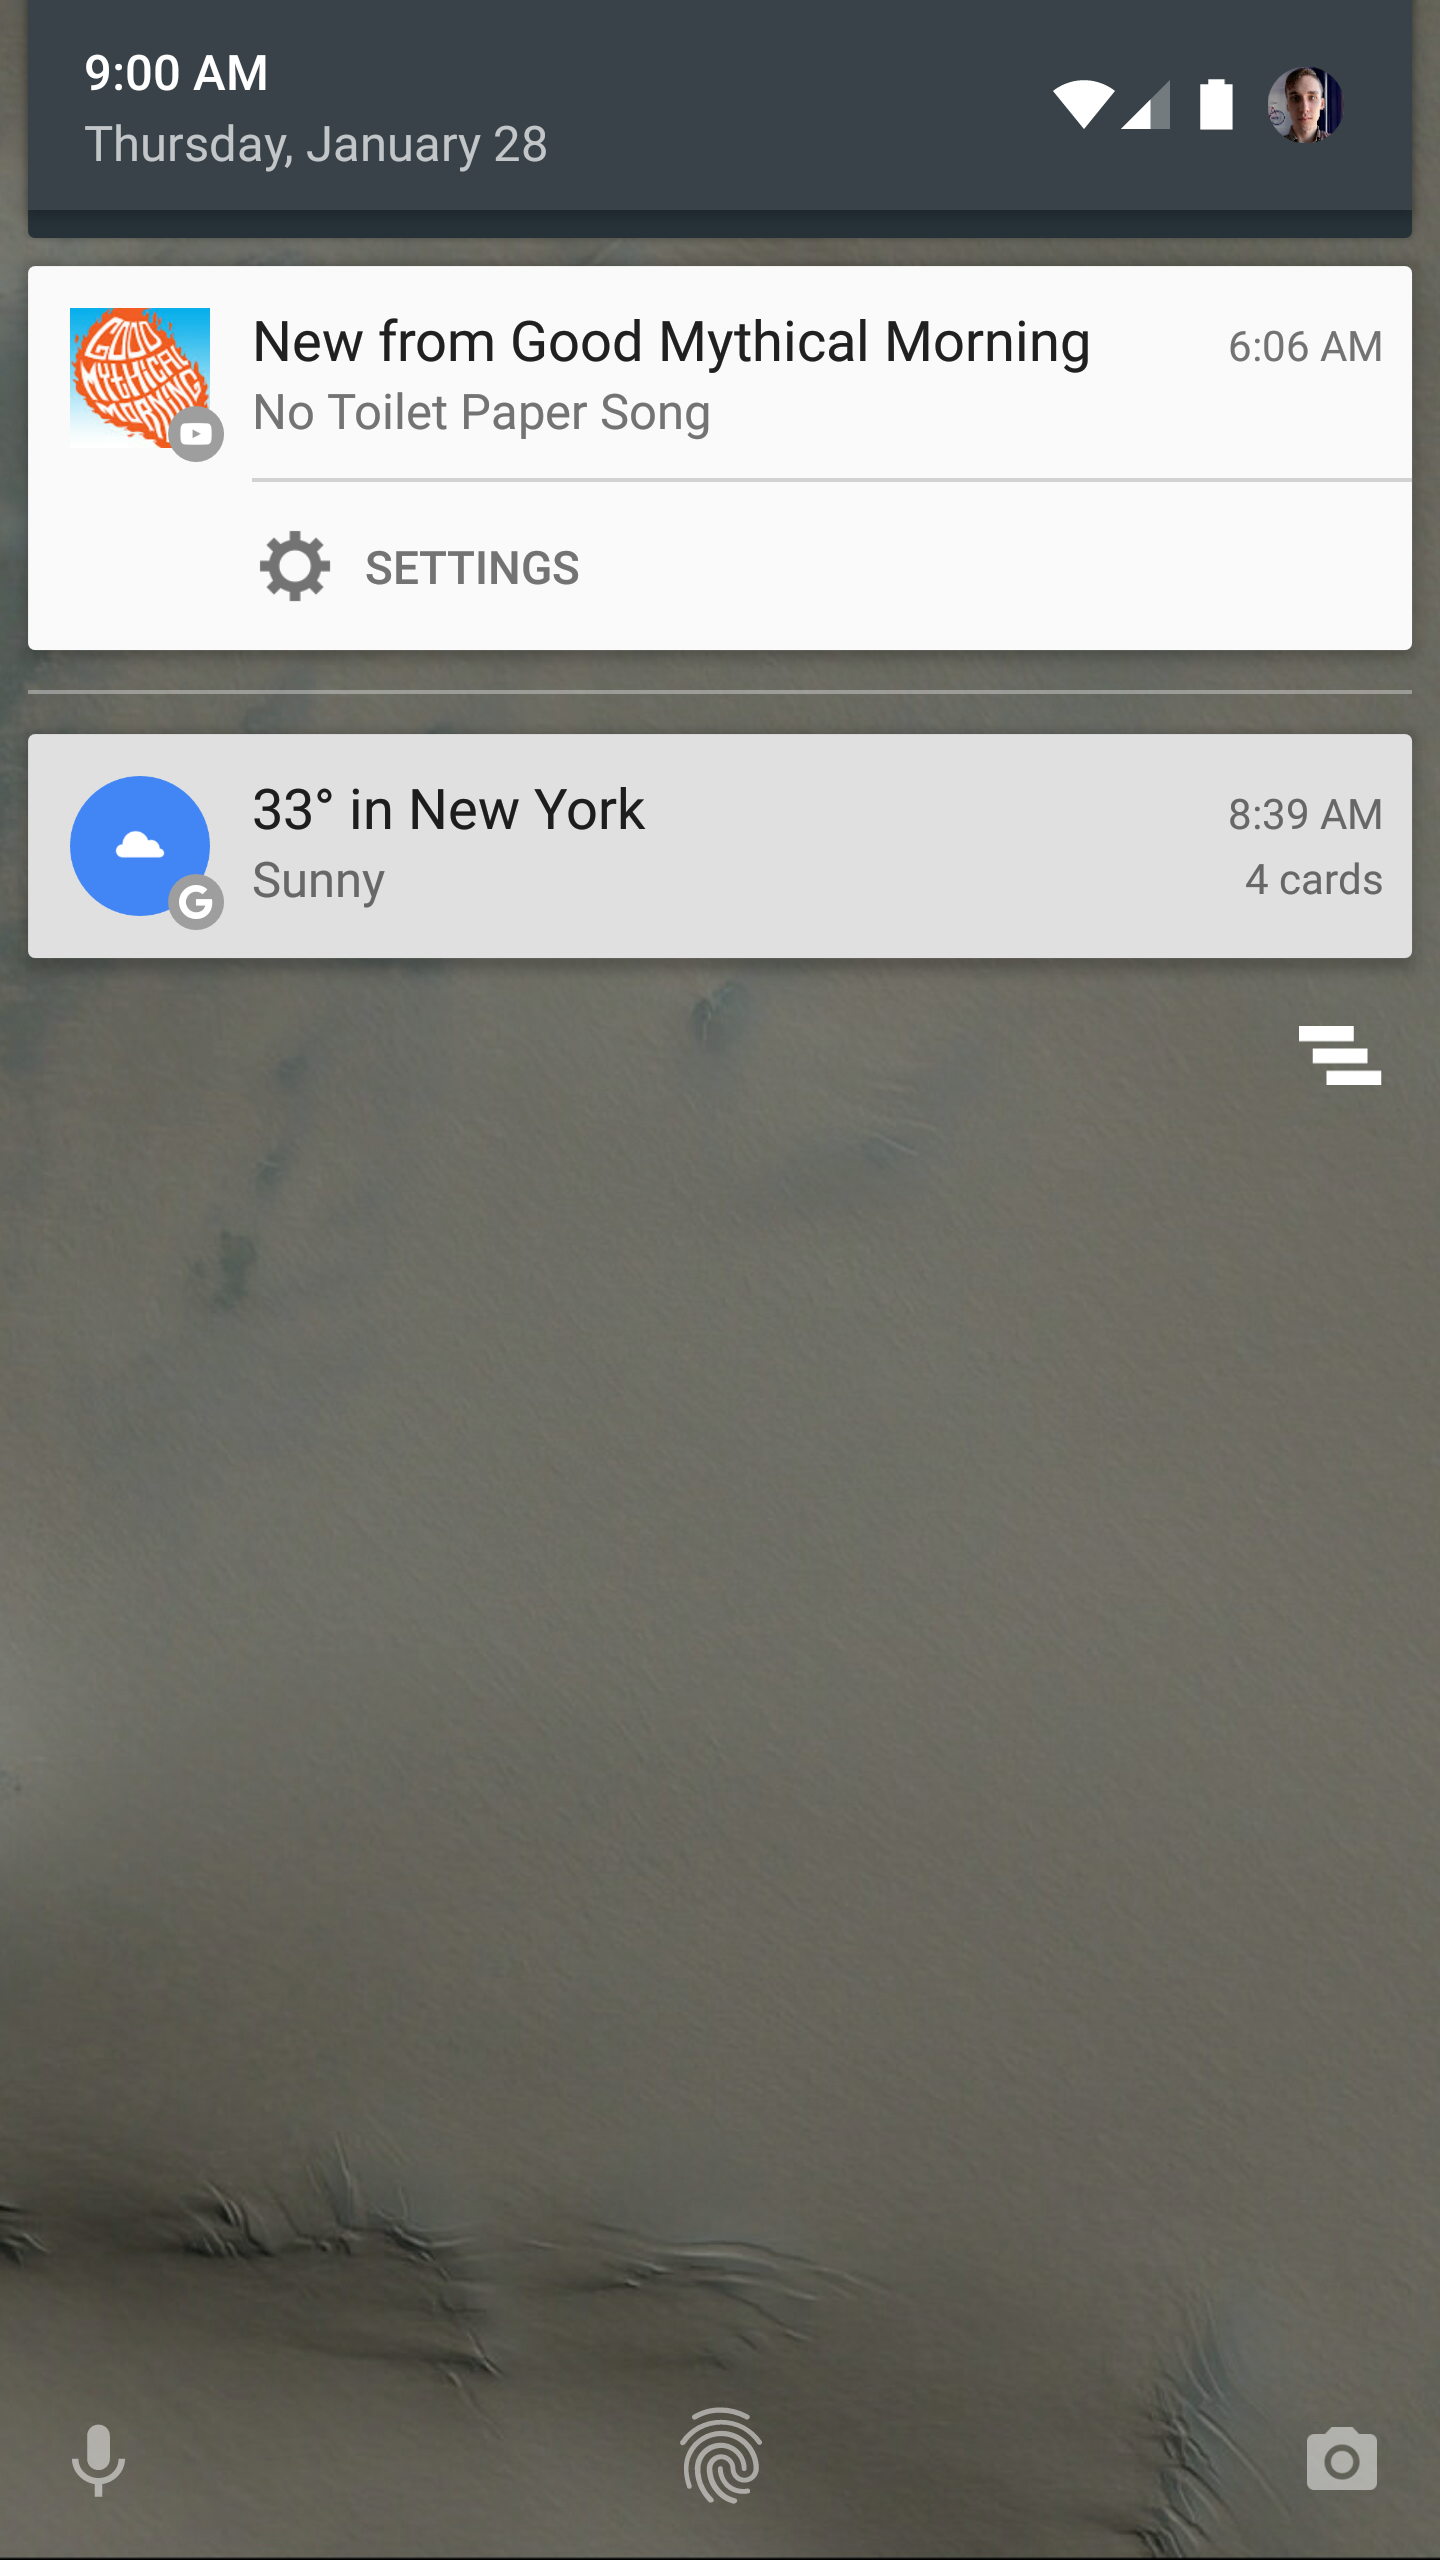 Youtube Notification Offers To Resume A Paused Video On: YouTube App Adds 'Watch Later' Action To 'New Upload